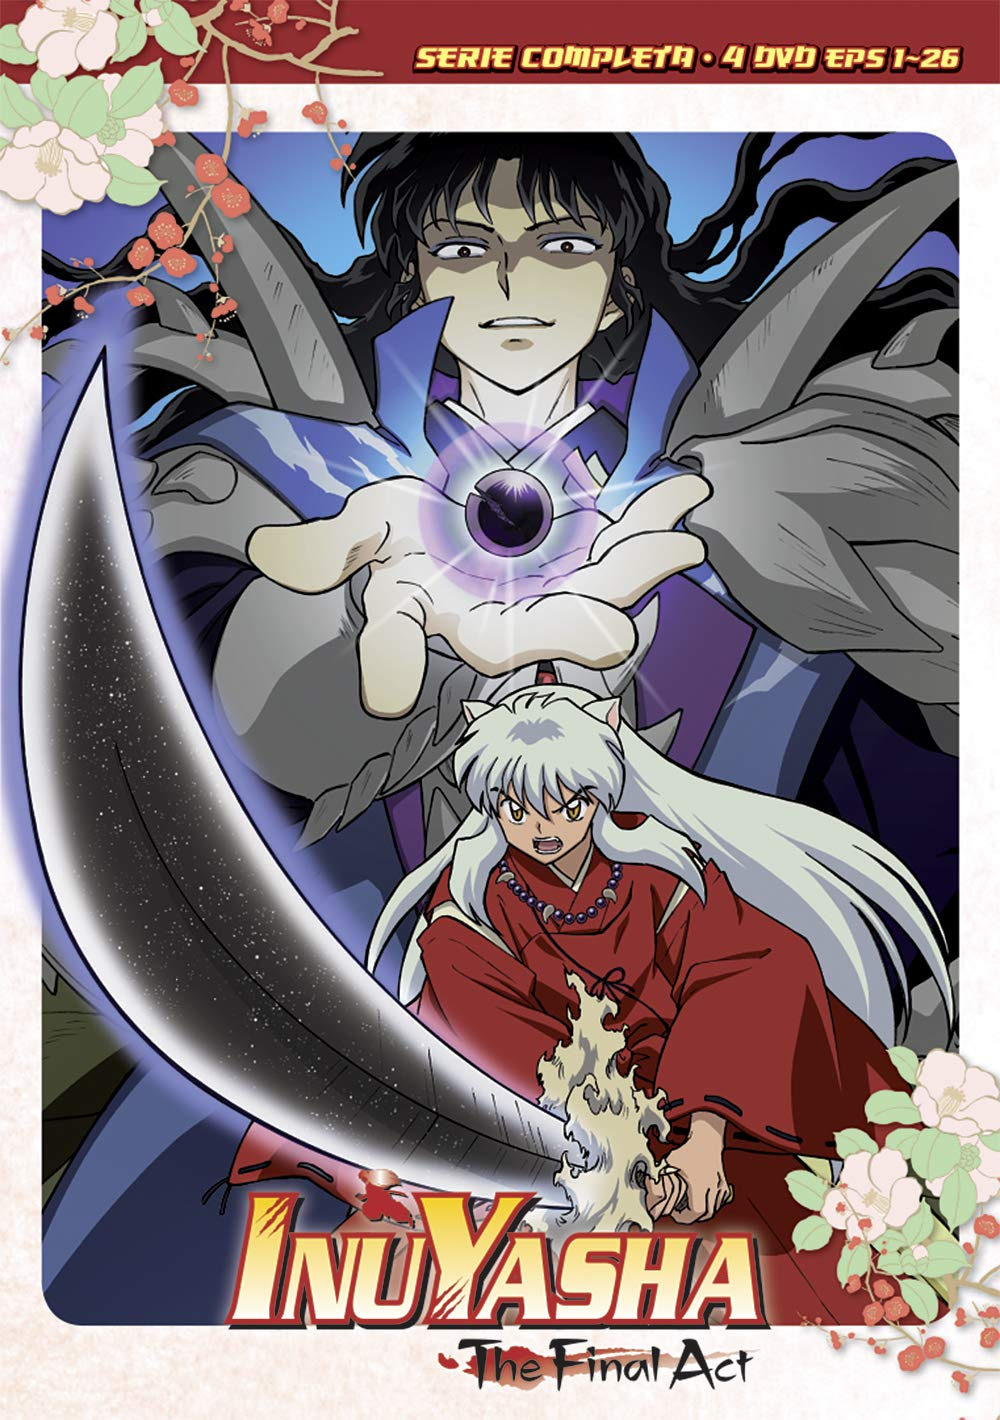 Inuyasha - The Final Act - The Complete Series (Eps 01-26) (4 Dvd) [Italia]